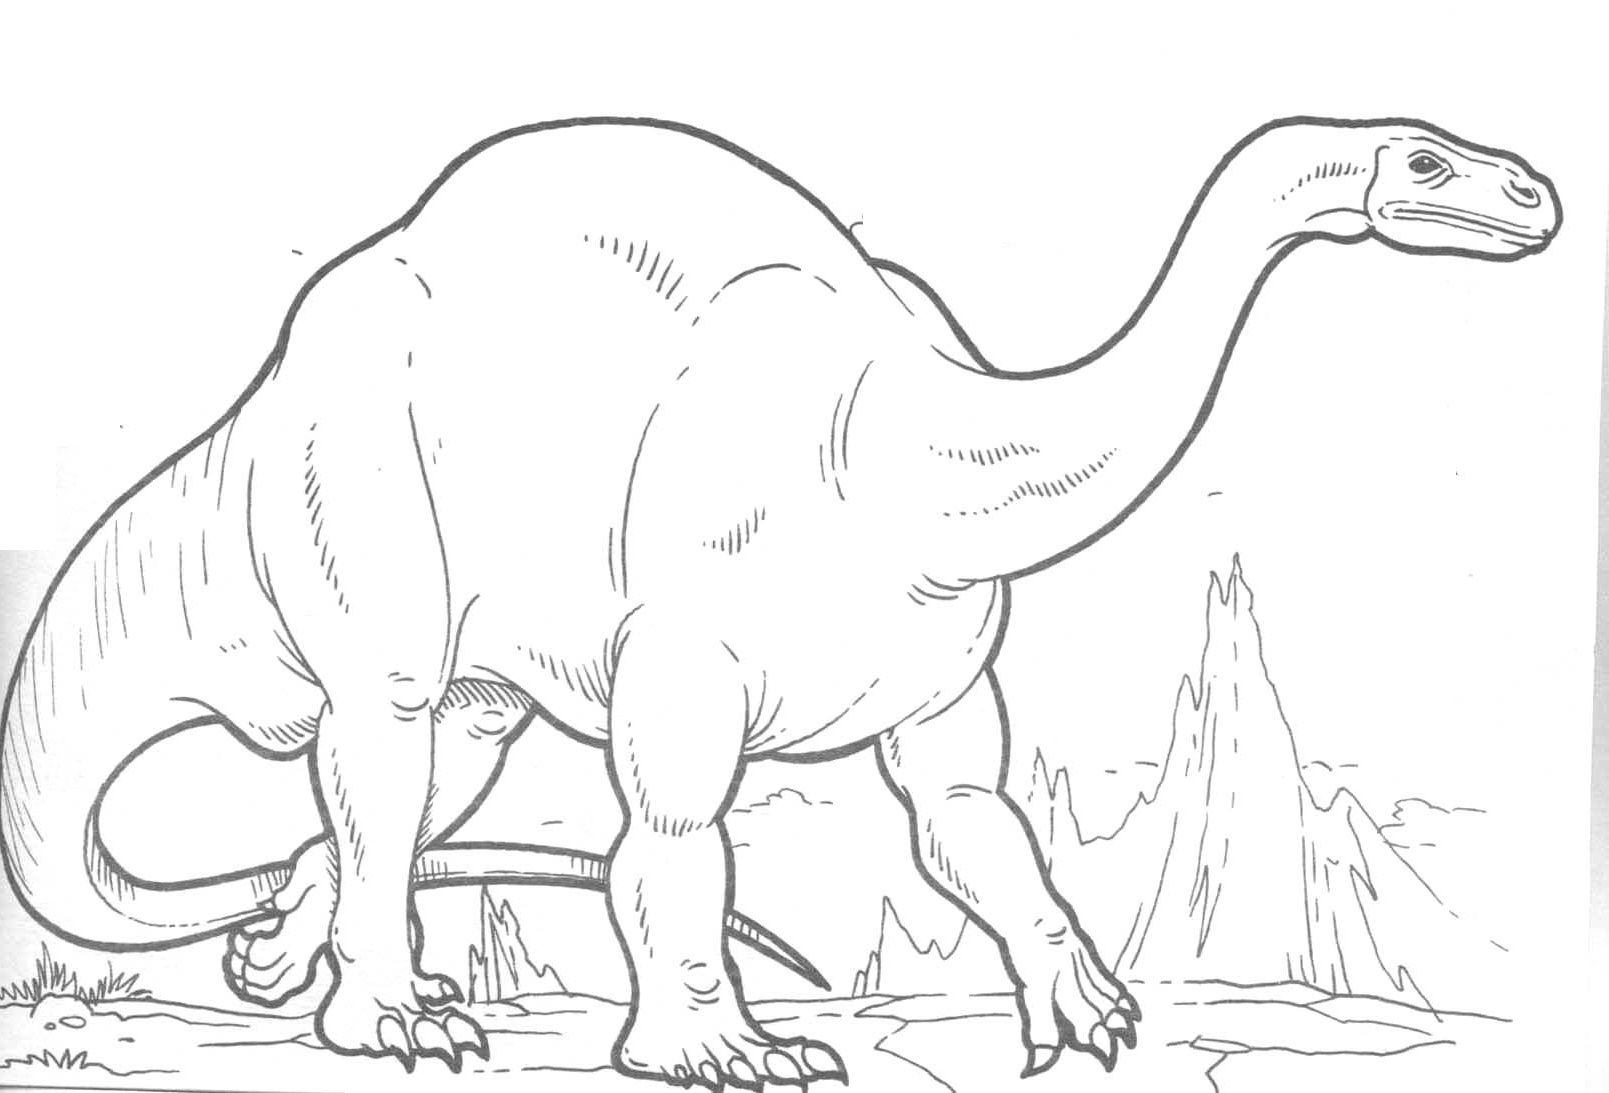 Dinosaurs With Strong Body Coloring Pages For Kids B55 Printable Dinosaurs Coloring Pages For Kids